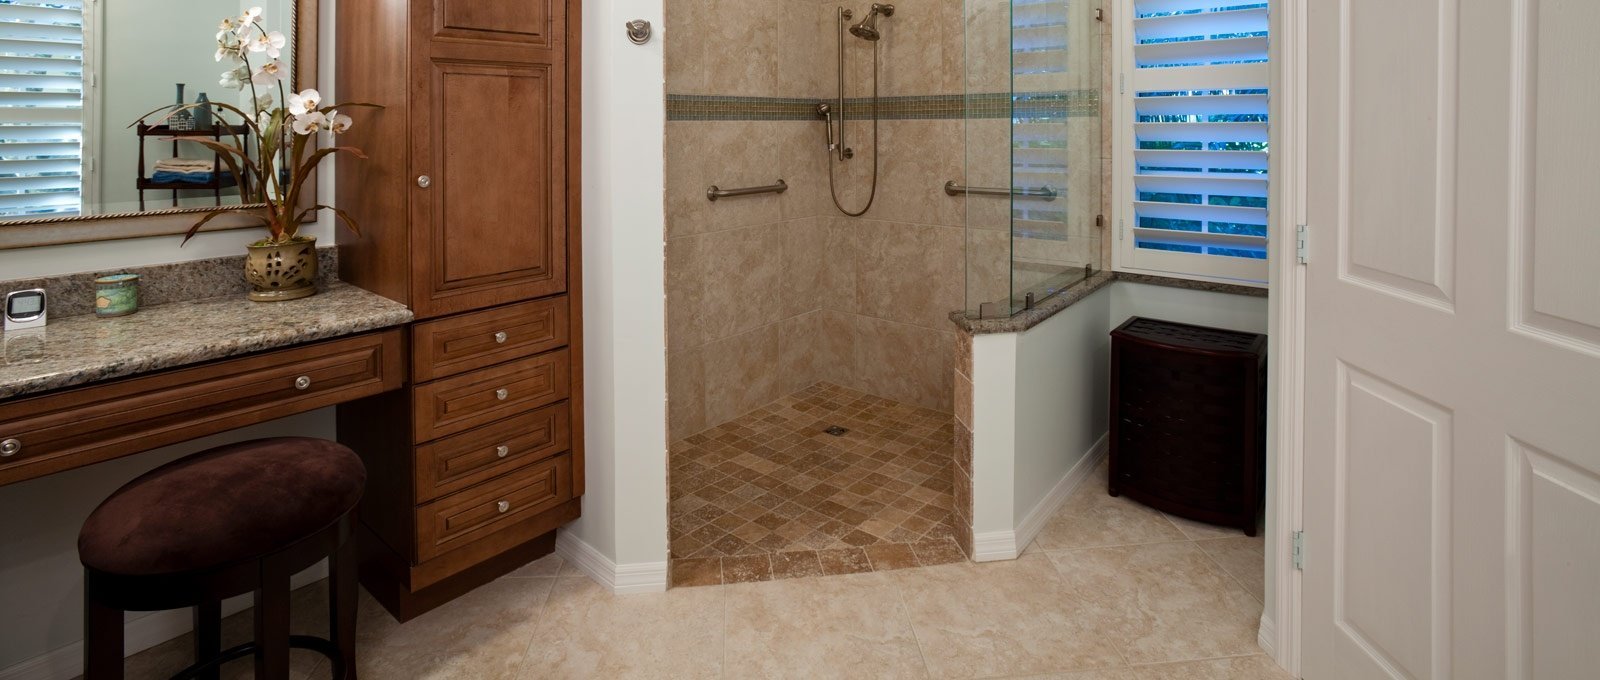 Need an Accessible Bathroom in Your Home? ~ Request A Consultation